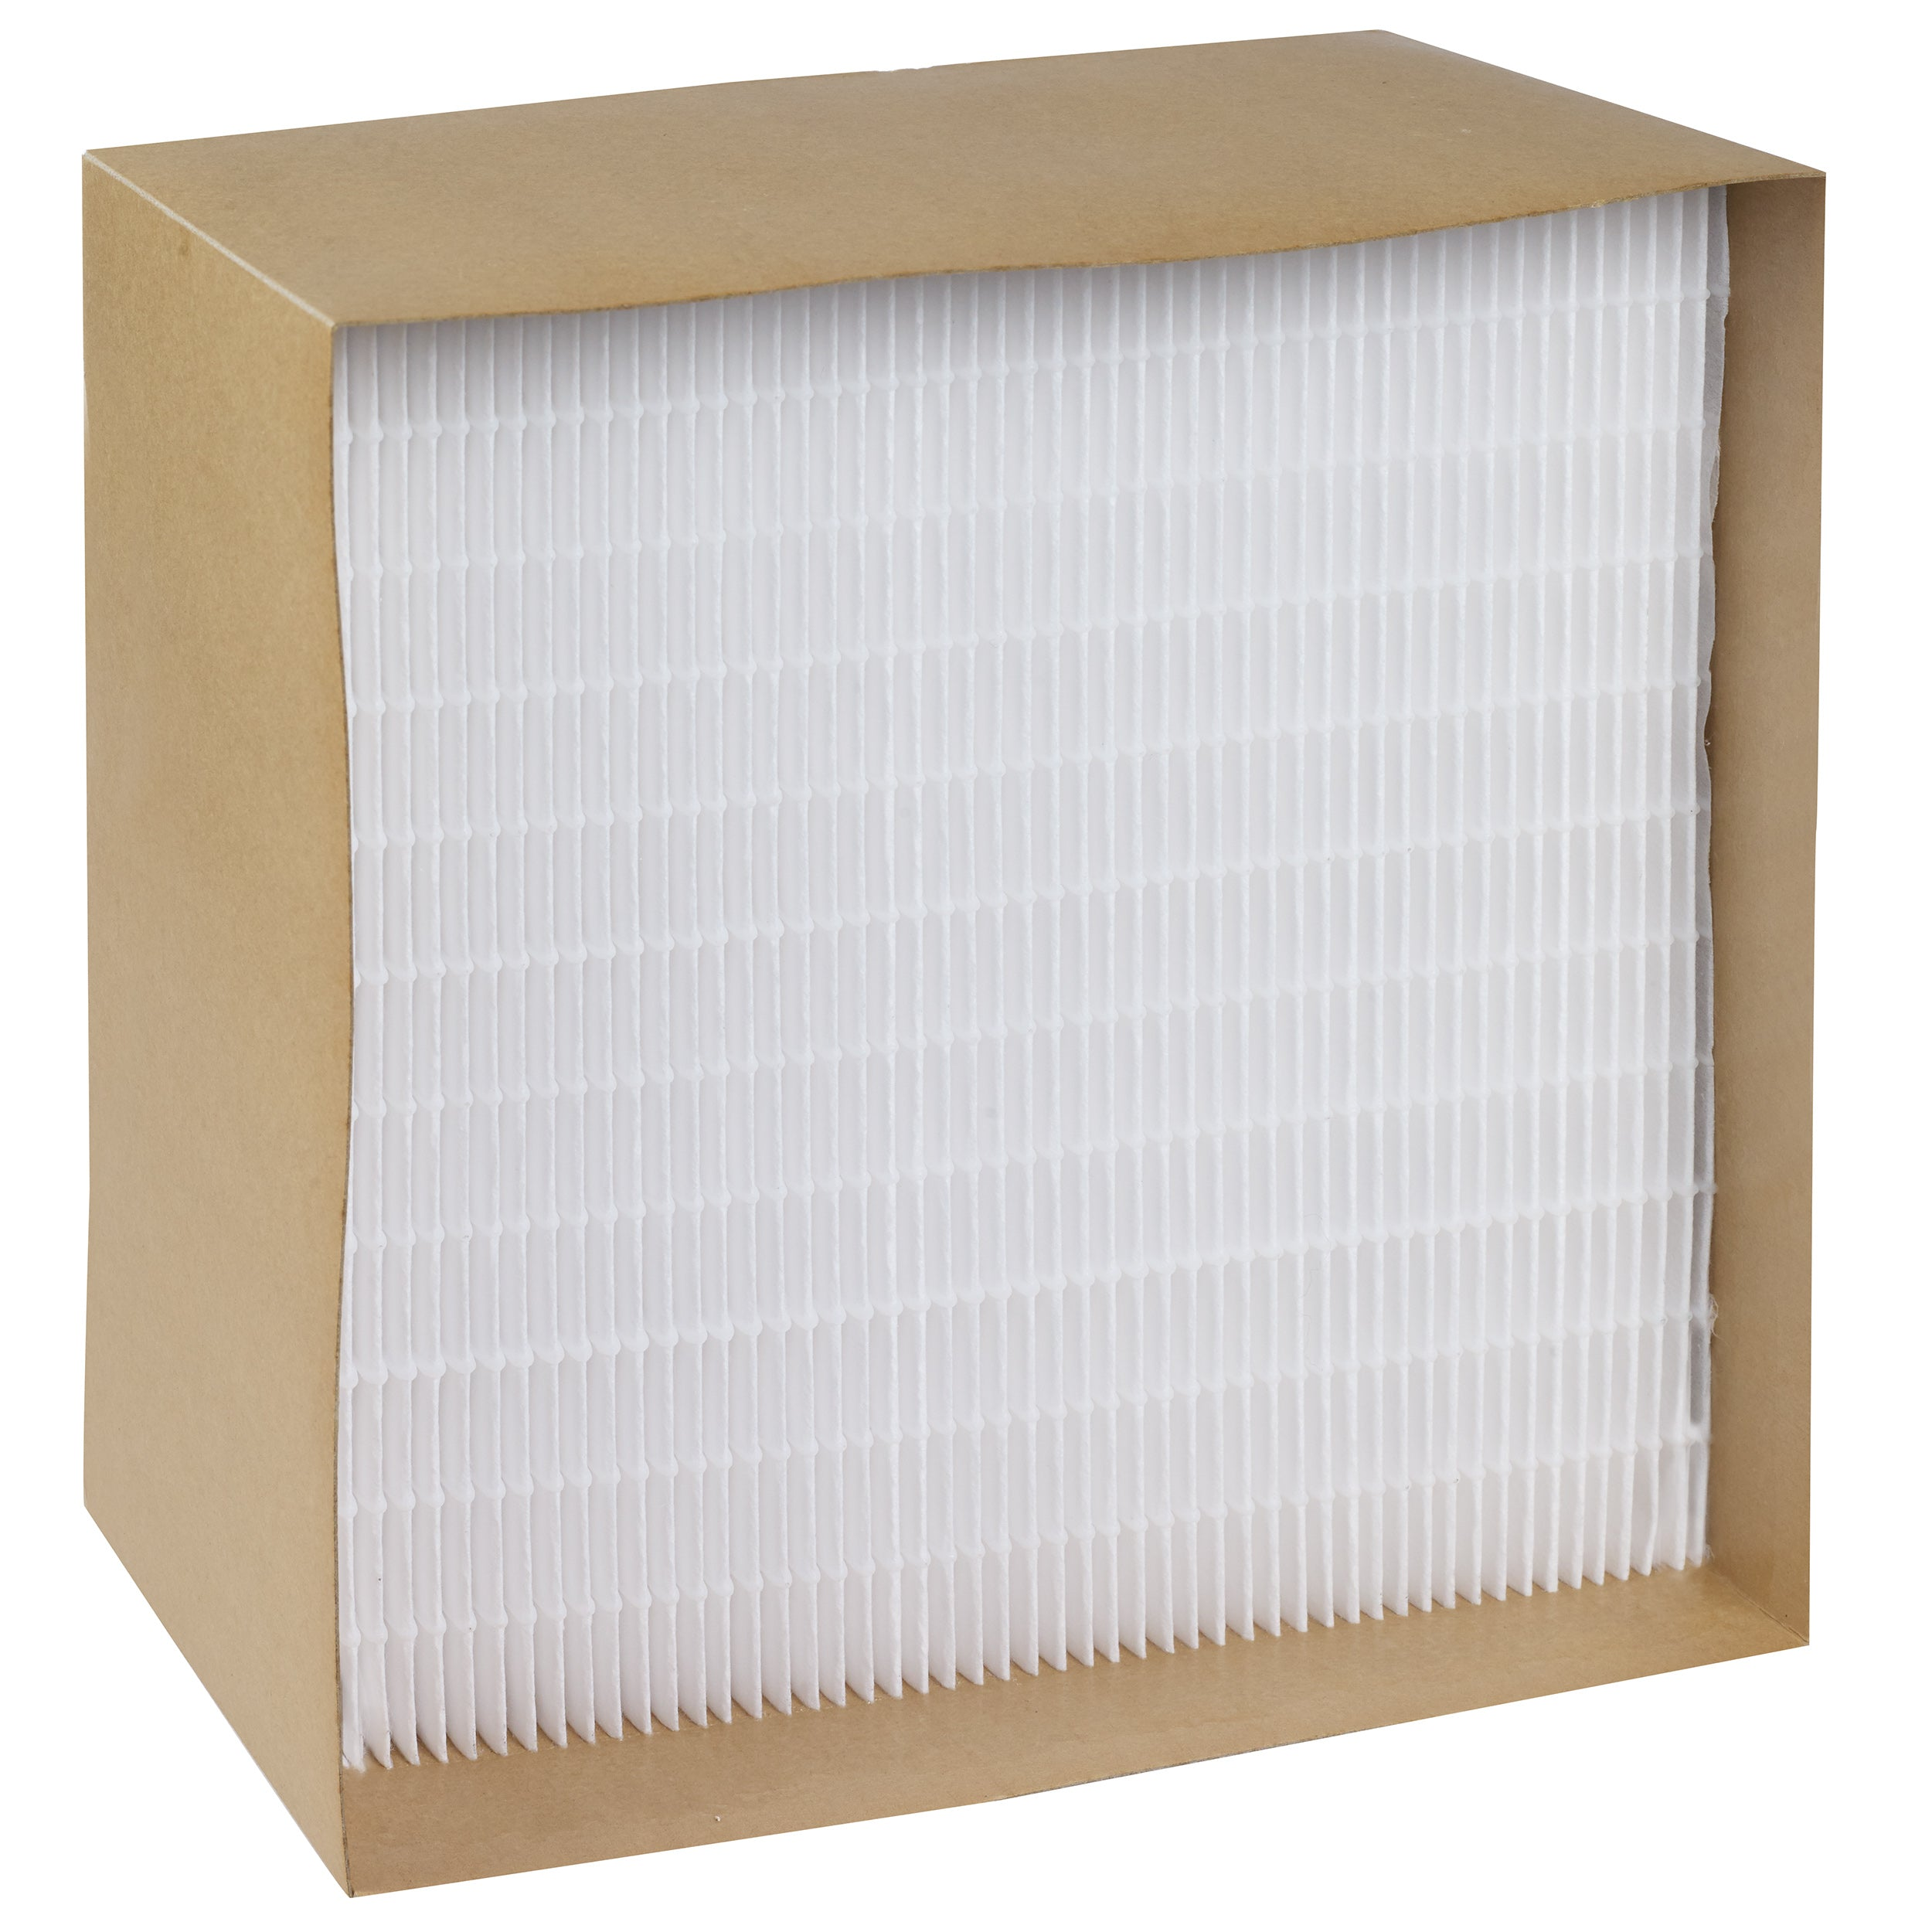 affordable Smart vent compatible filter-Mini Pleat-supercellnz